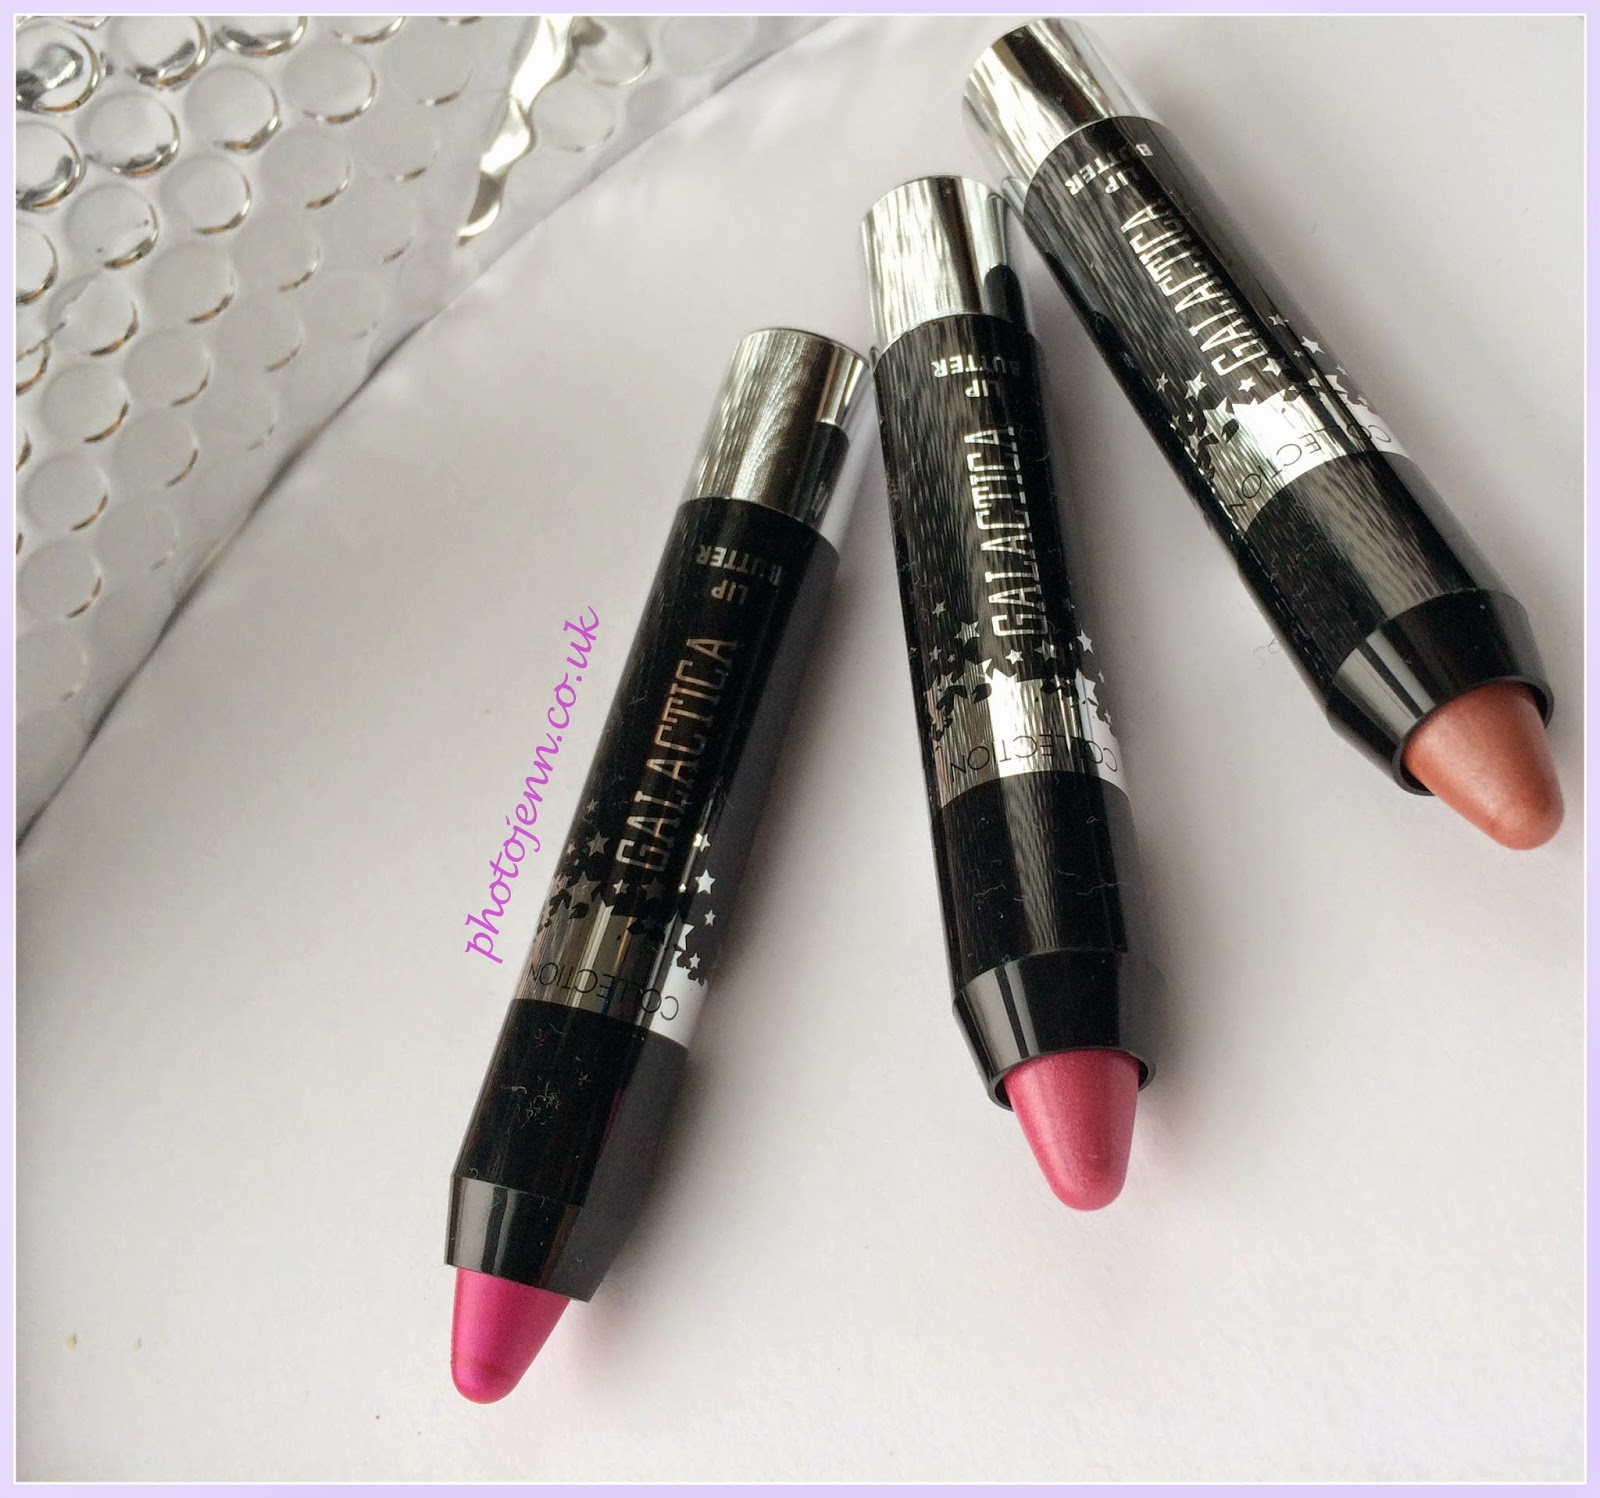 glactica-collection-lip-butters-moon-rock-cosmetic-candy-pink-rush